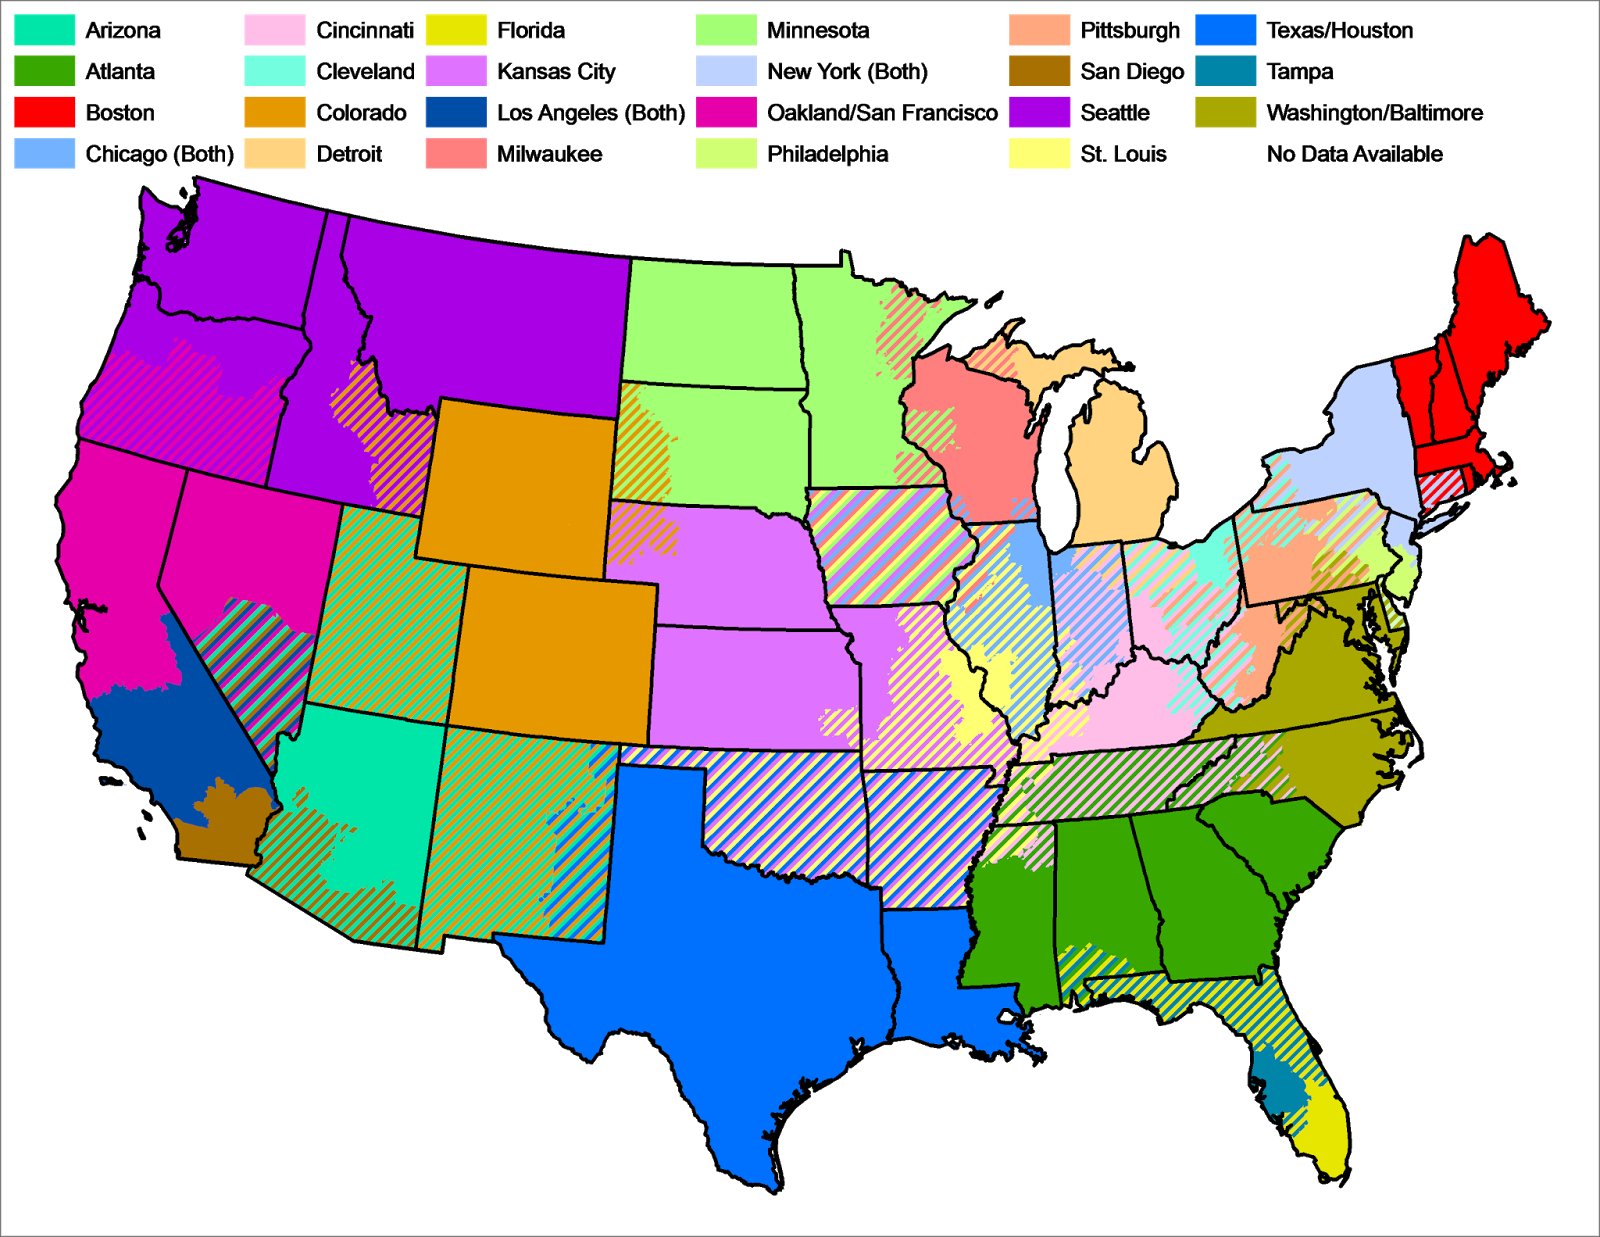 rough regionsl sports network map according to mlb blackout map via wikipedia